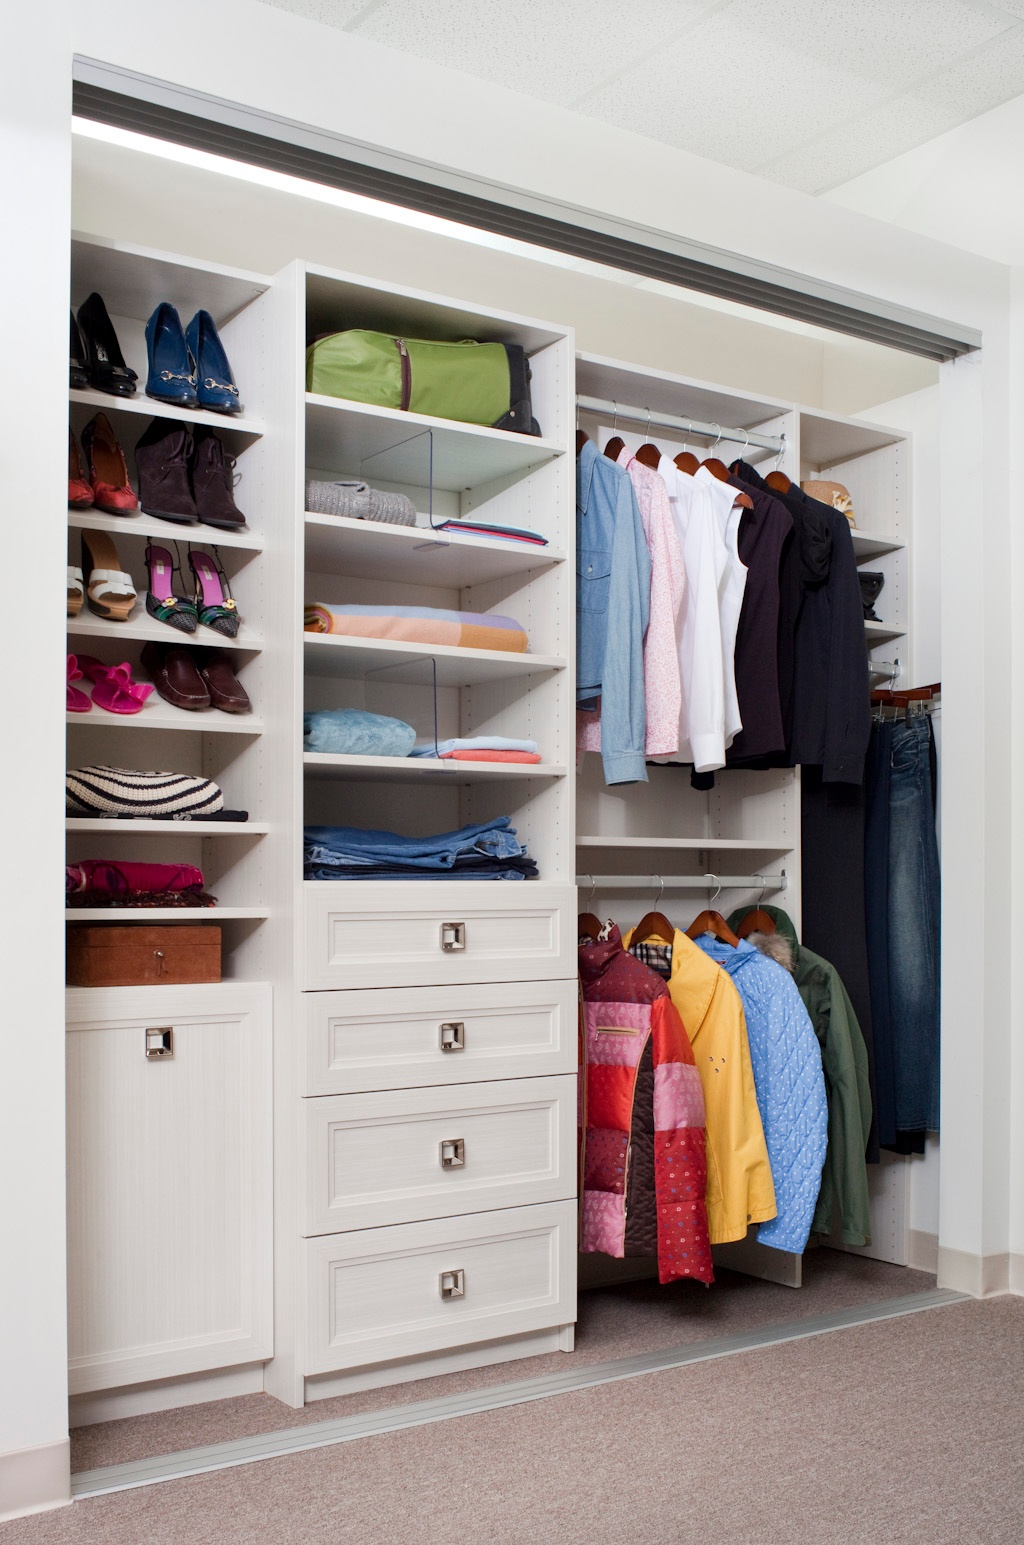 How to Create Closet Solutions for Your Home That Really Make a Difference